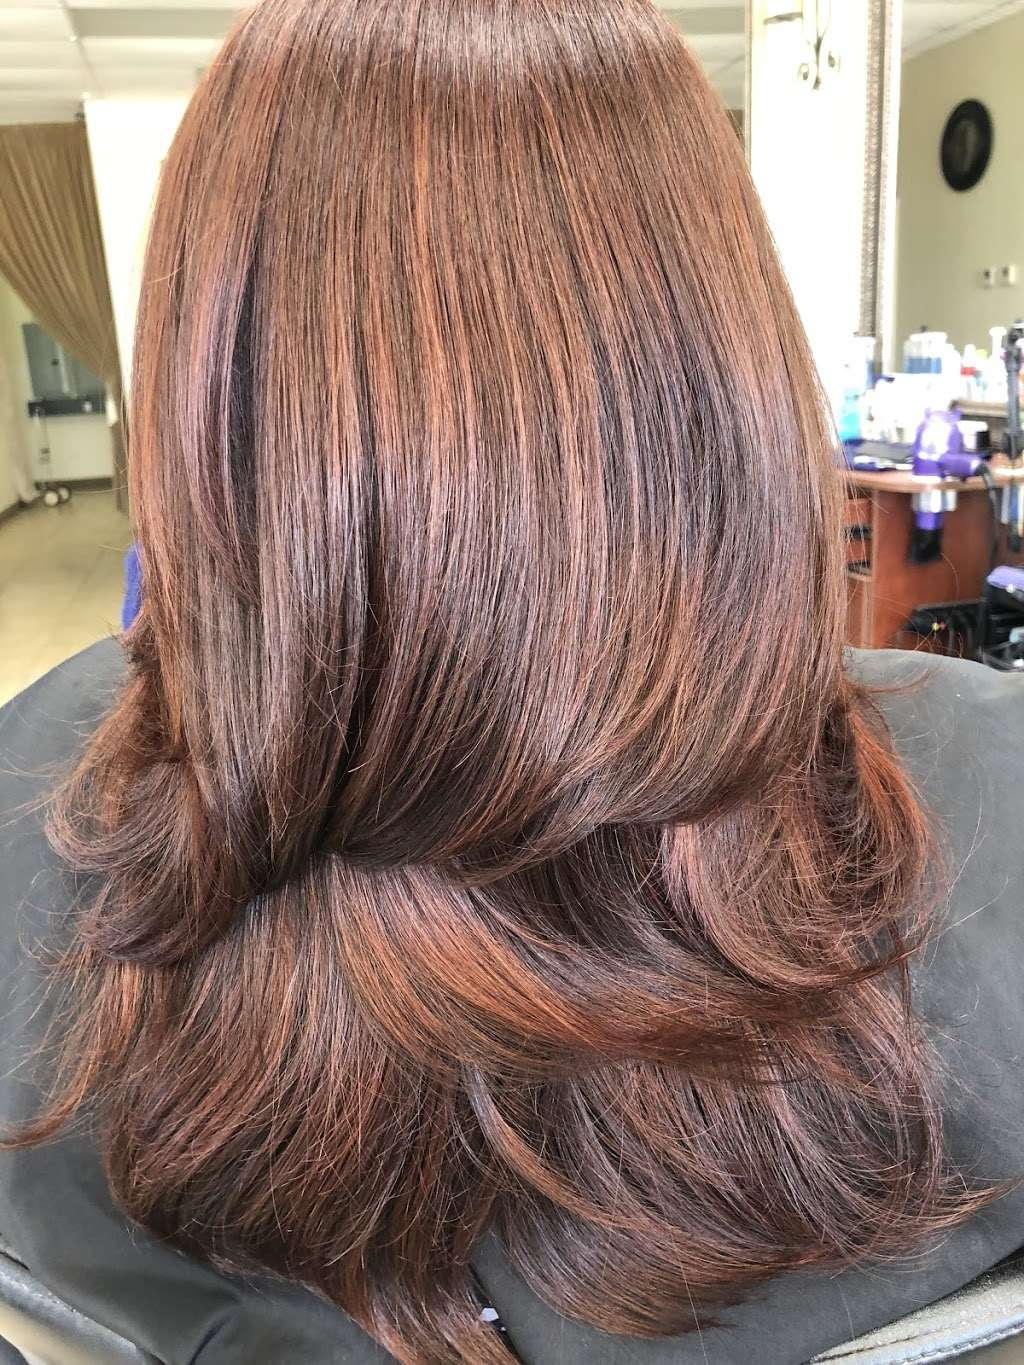 Pro Touch Salon - hair care    Photo 10 of 10   Address: 2746 Manvel Rd, Pearland, TX 77584, USA   Phone: (281) 997-7277